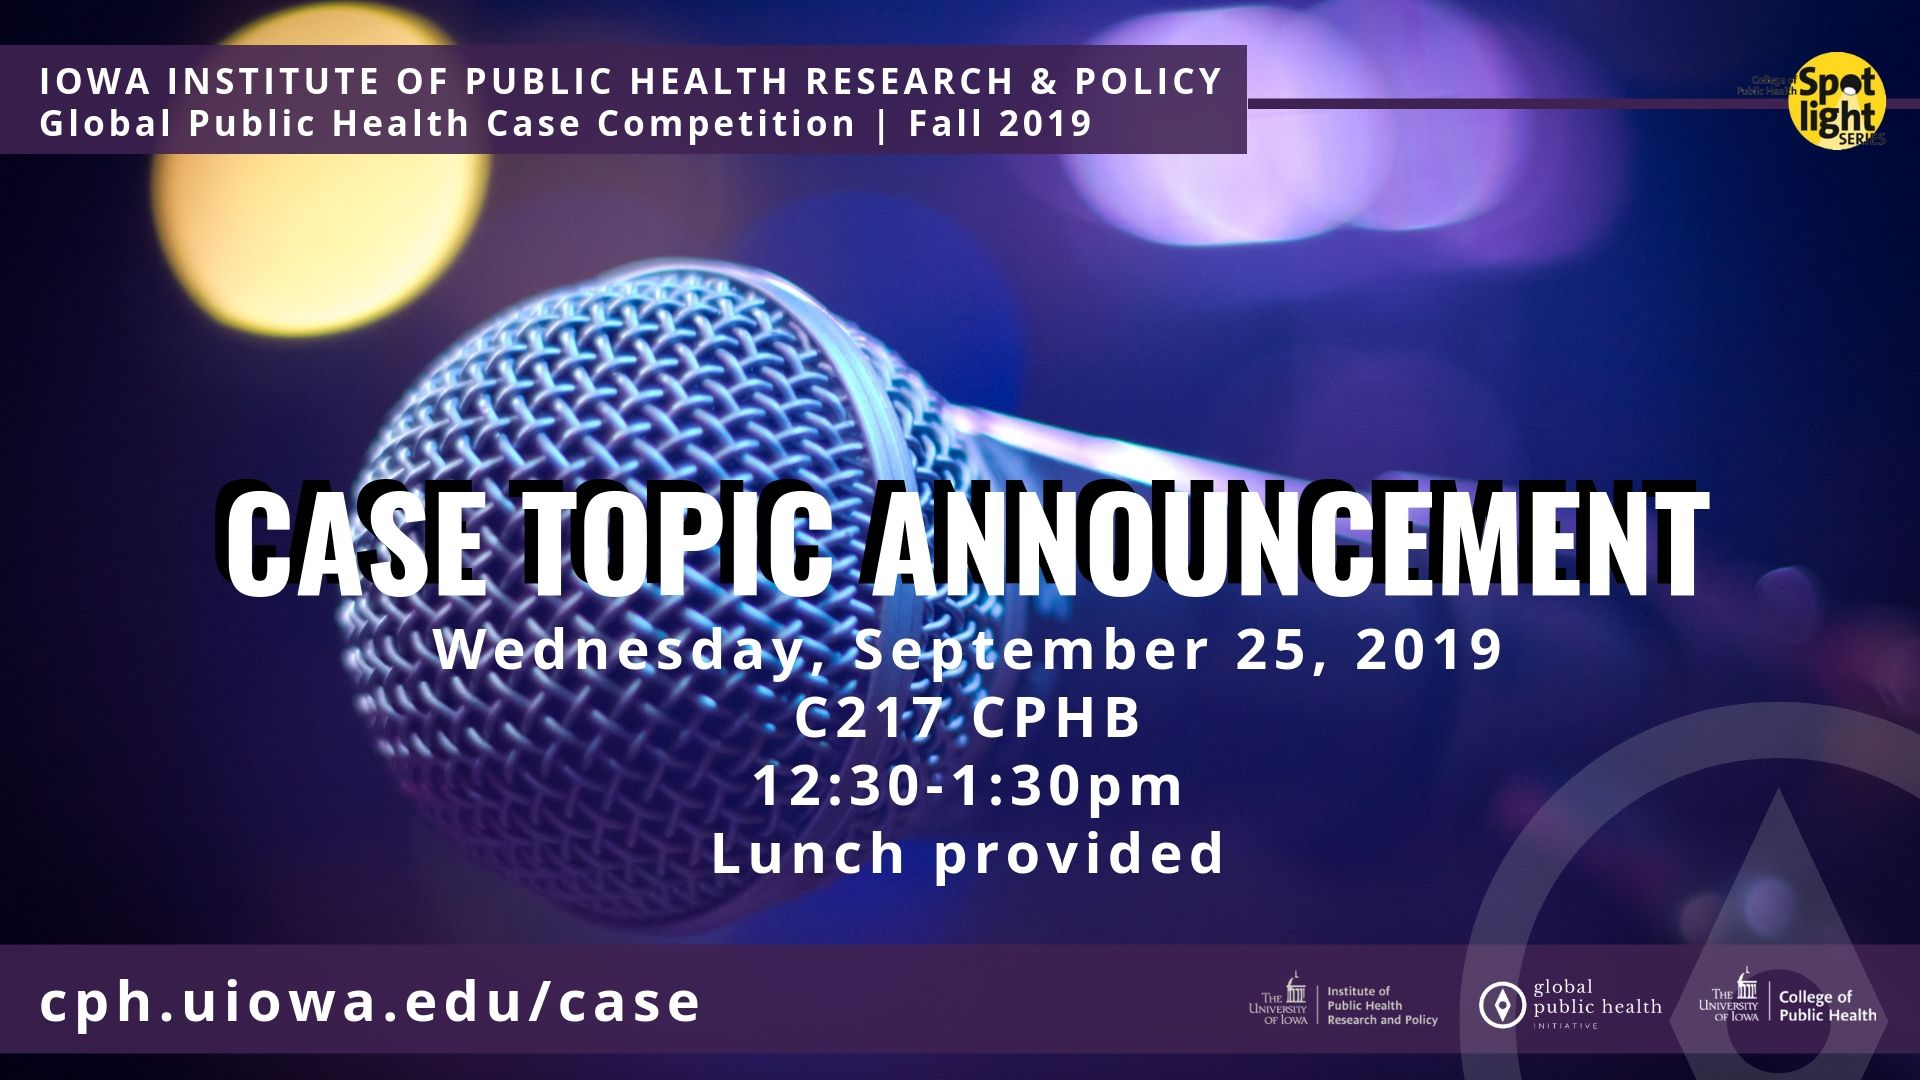 IIPHRP Annual Global Health Case Competition Announcement